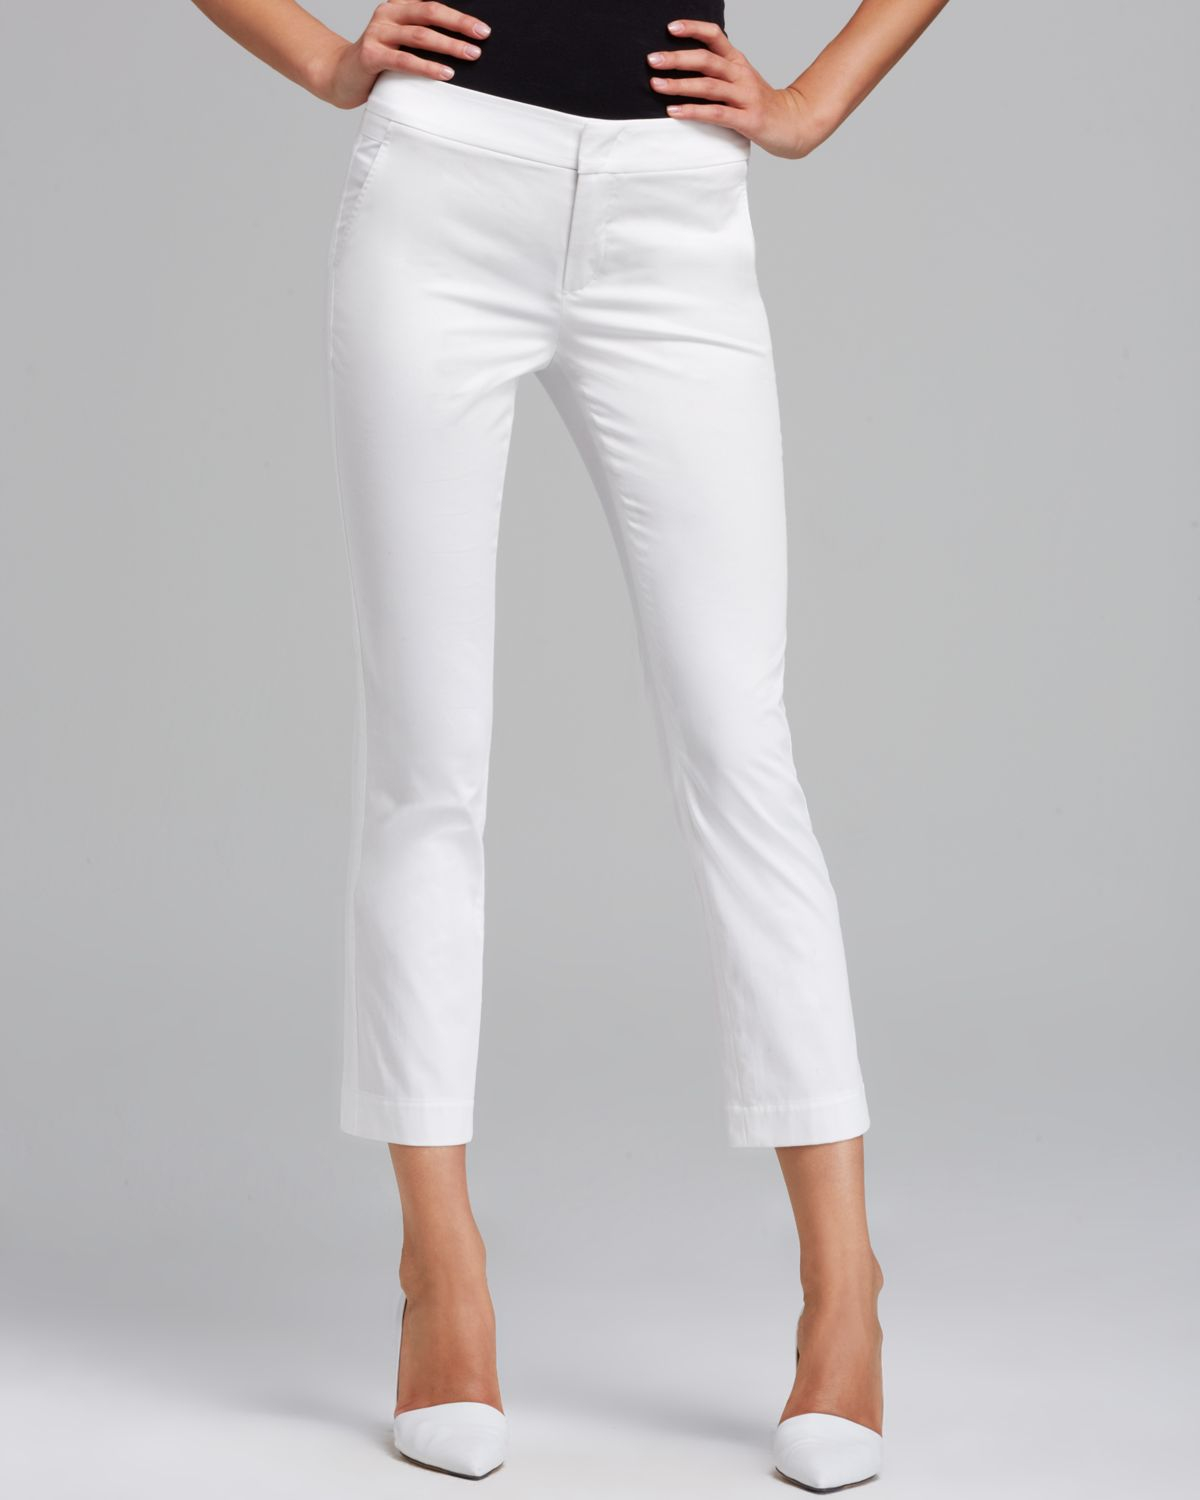 Vince Pants Crop In White Lyst